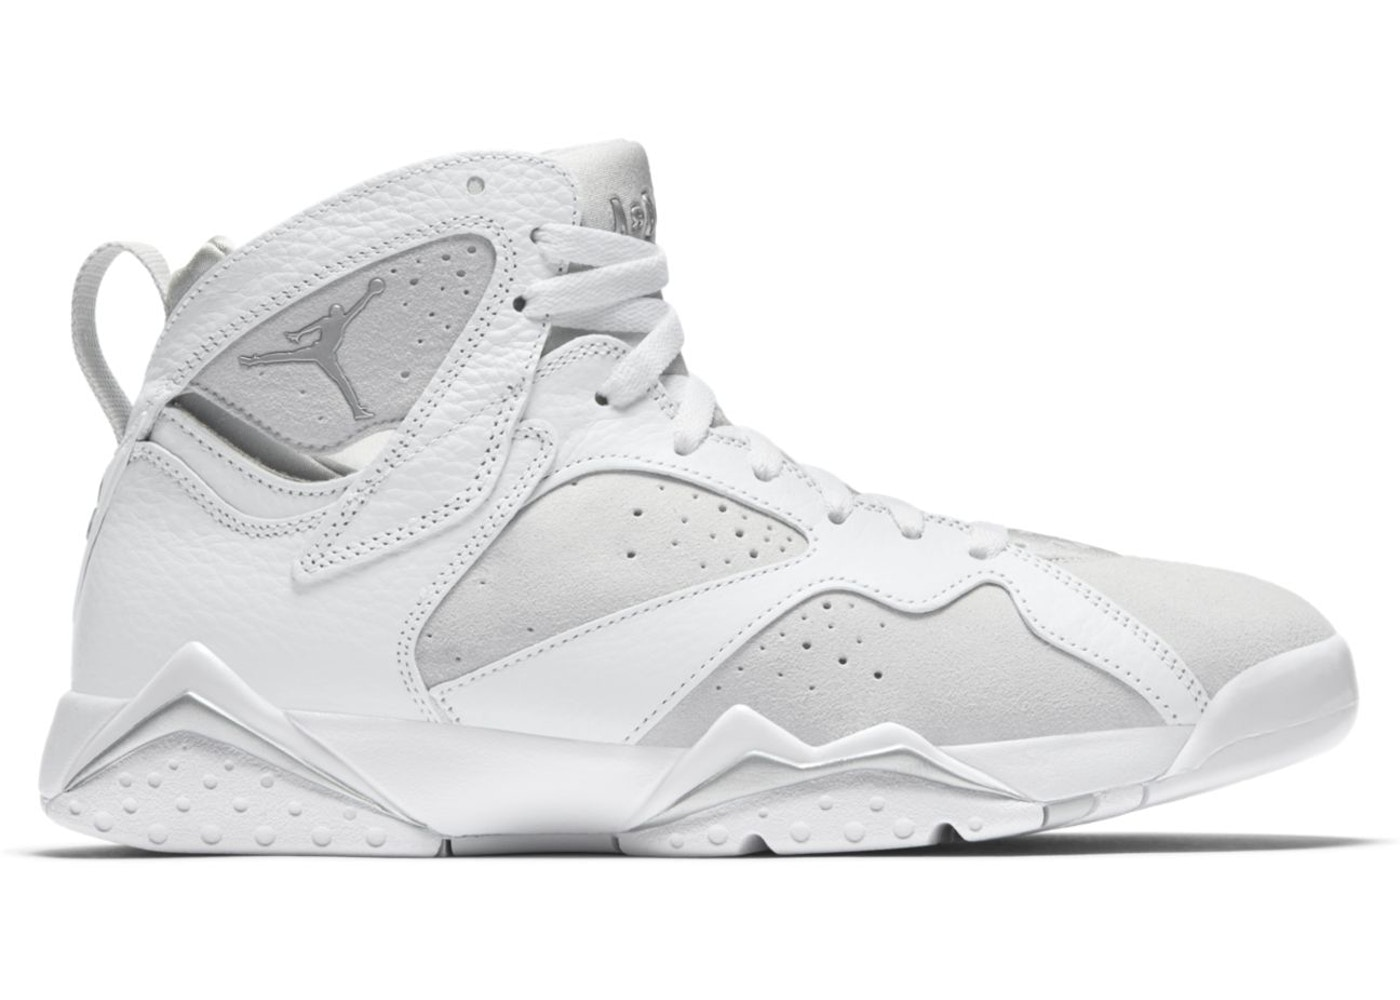 low priced b33dc 126c3 Jordan 7 Retro Pure Platinum - 304775-120